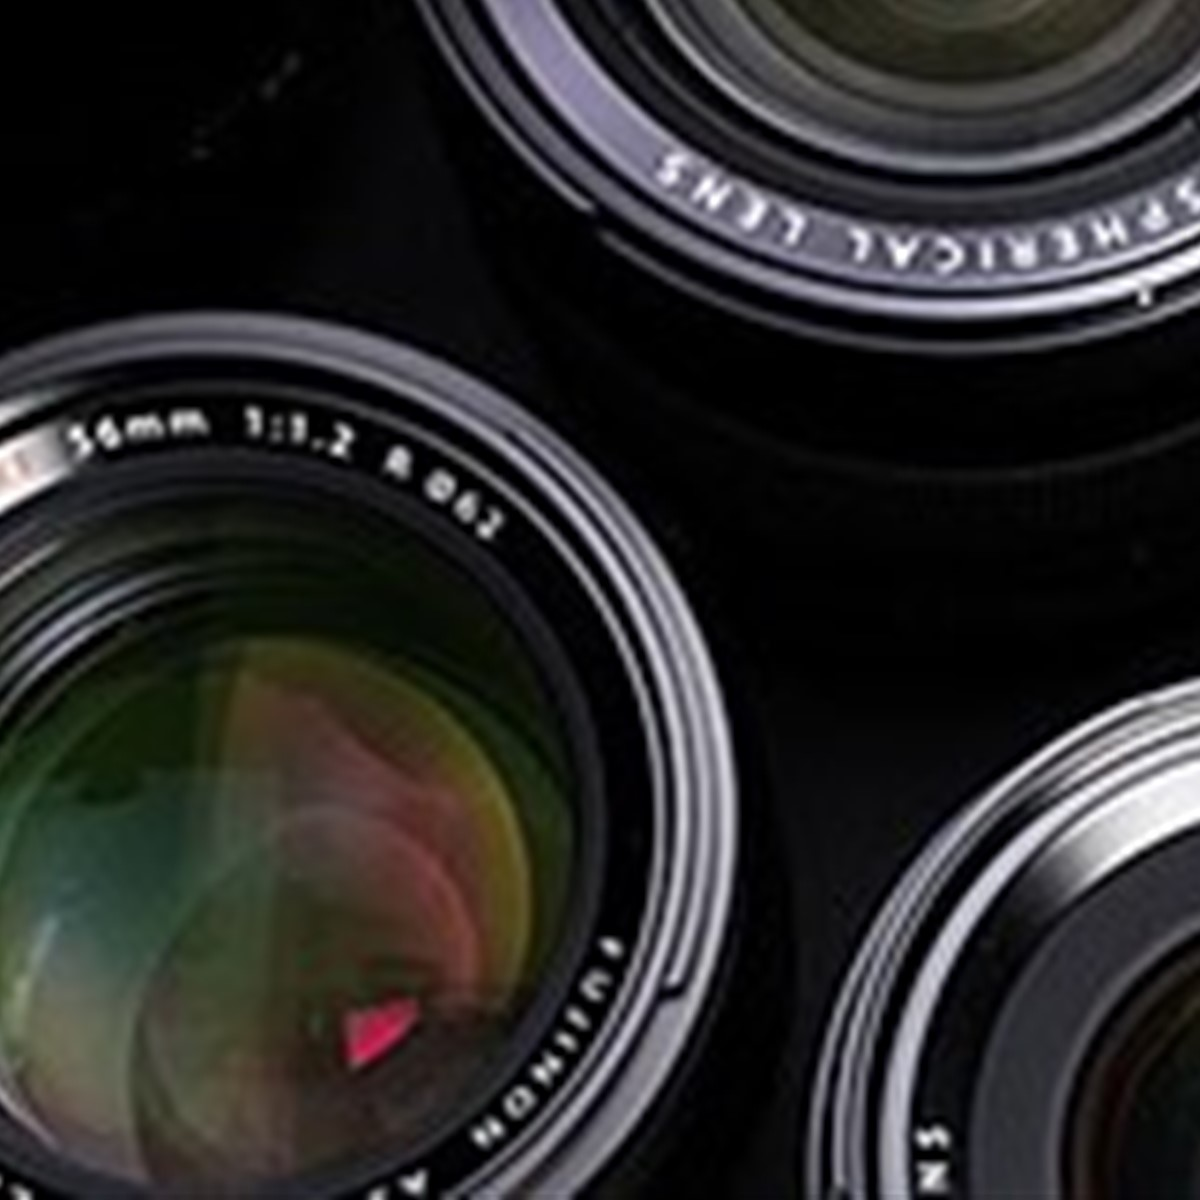 Jual Murah Photography News Issue 34 By Bright Publishing Issuu Orient Fem7p00cb9 Jam Tangan Pria Silver Fujifilm Plans To Increase Interchangeable Lens Production Capacity